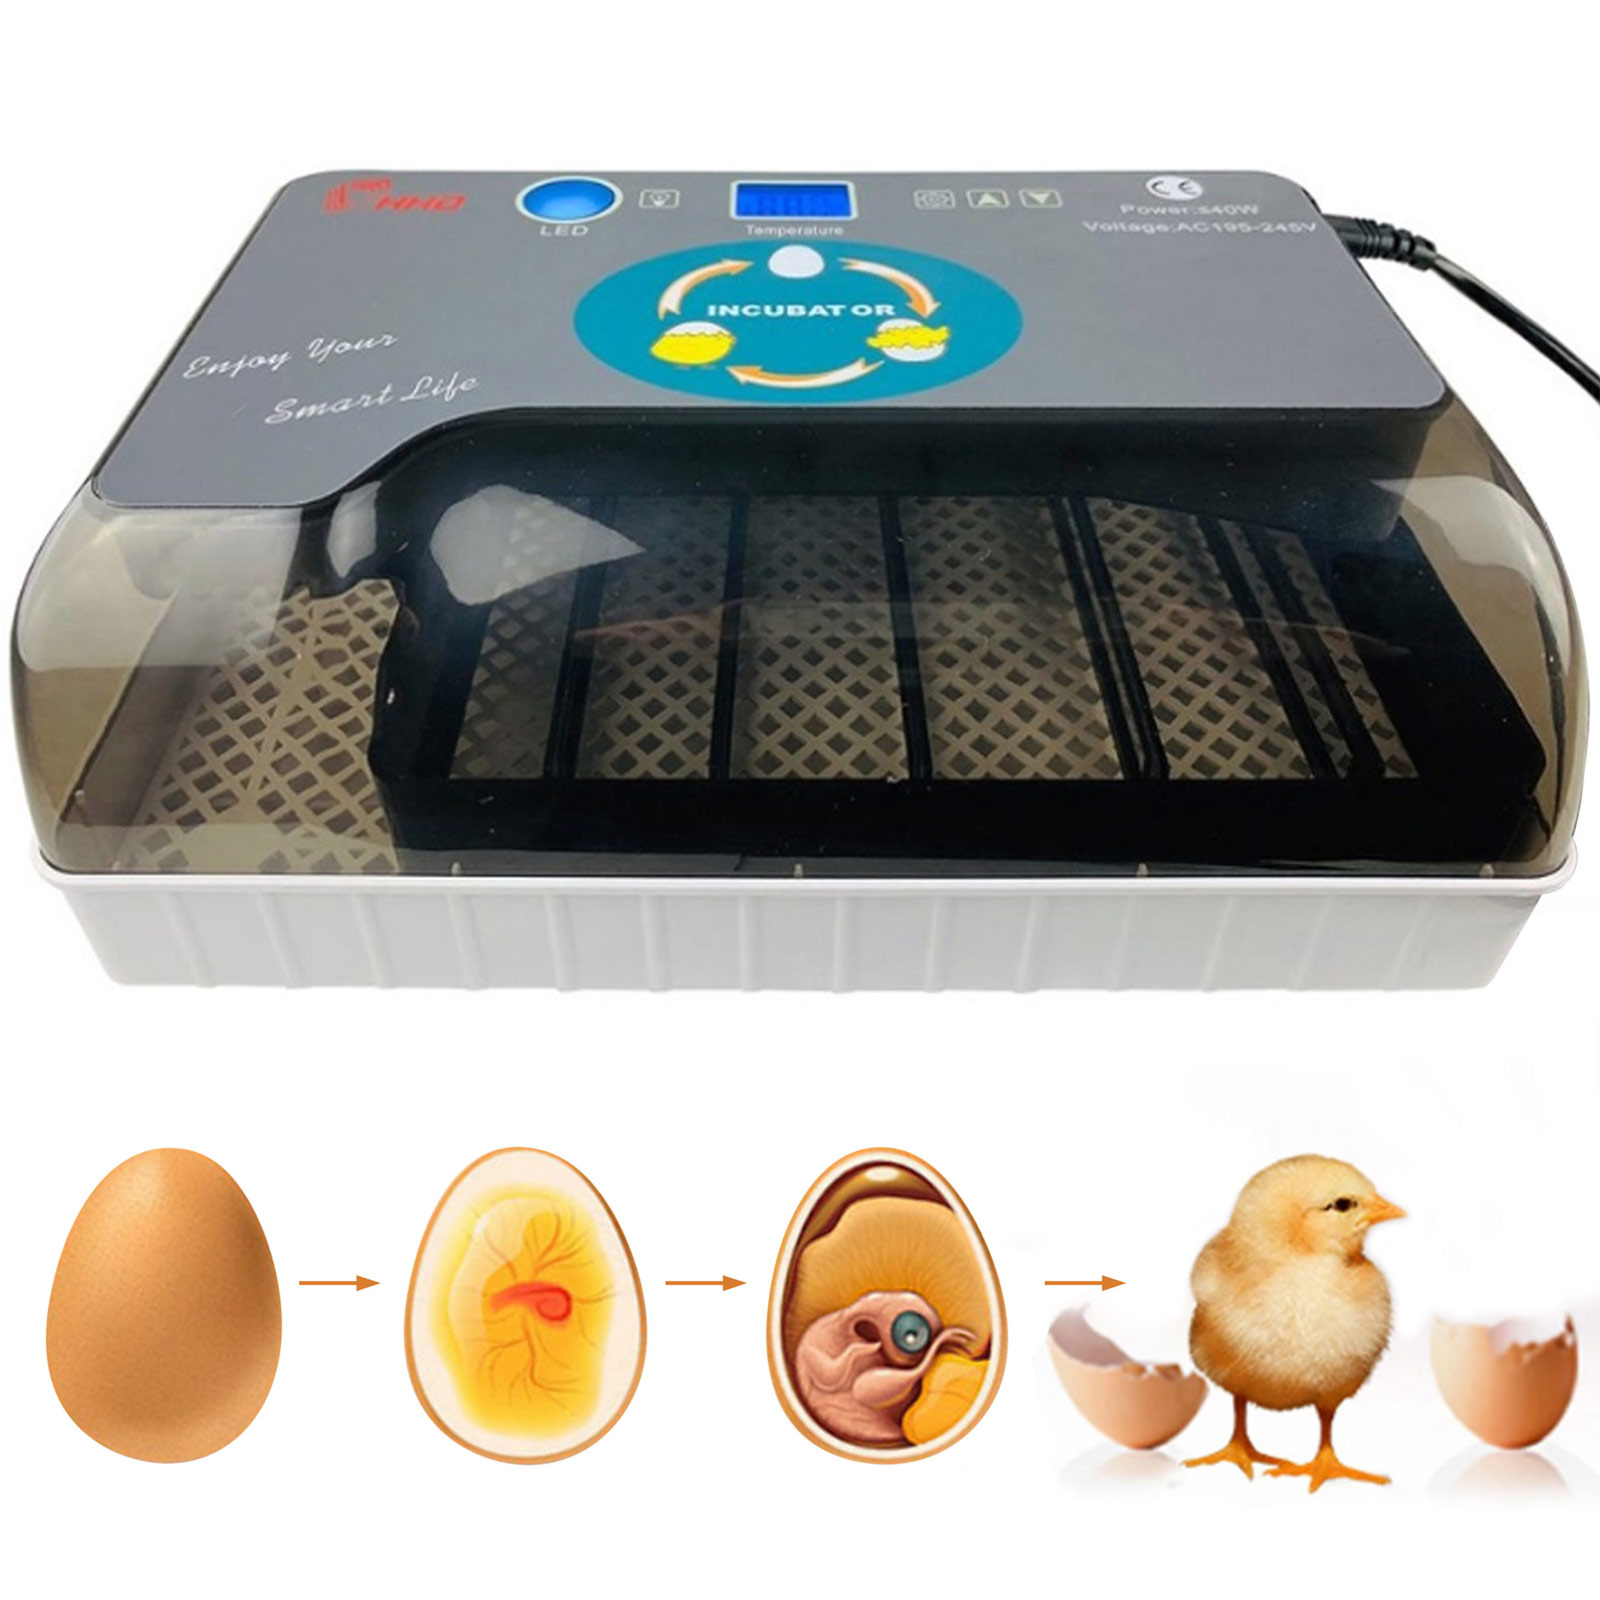 Behogar Eggs Semi-automatic Digital Incubator Brooder Machine Adjustable Temperature Poultry Hatcher for Chickens Duck Bird Eggs